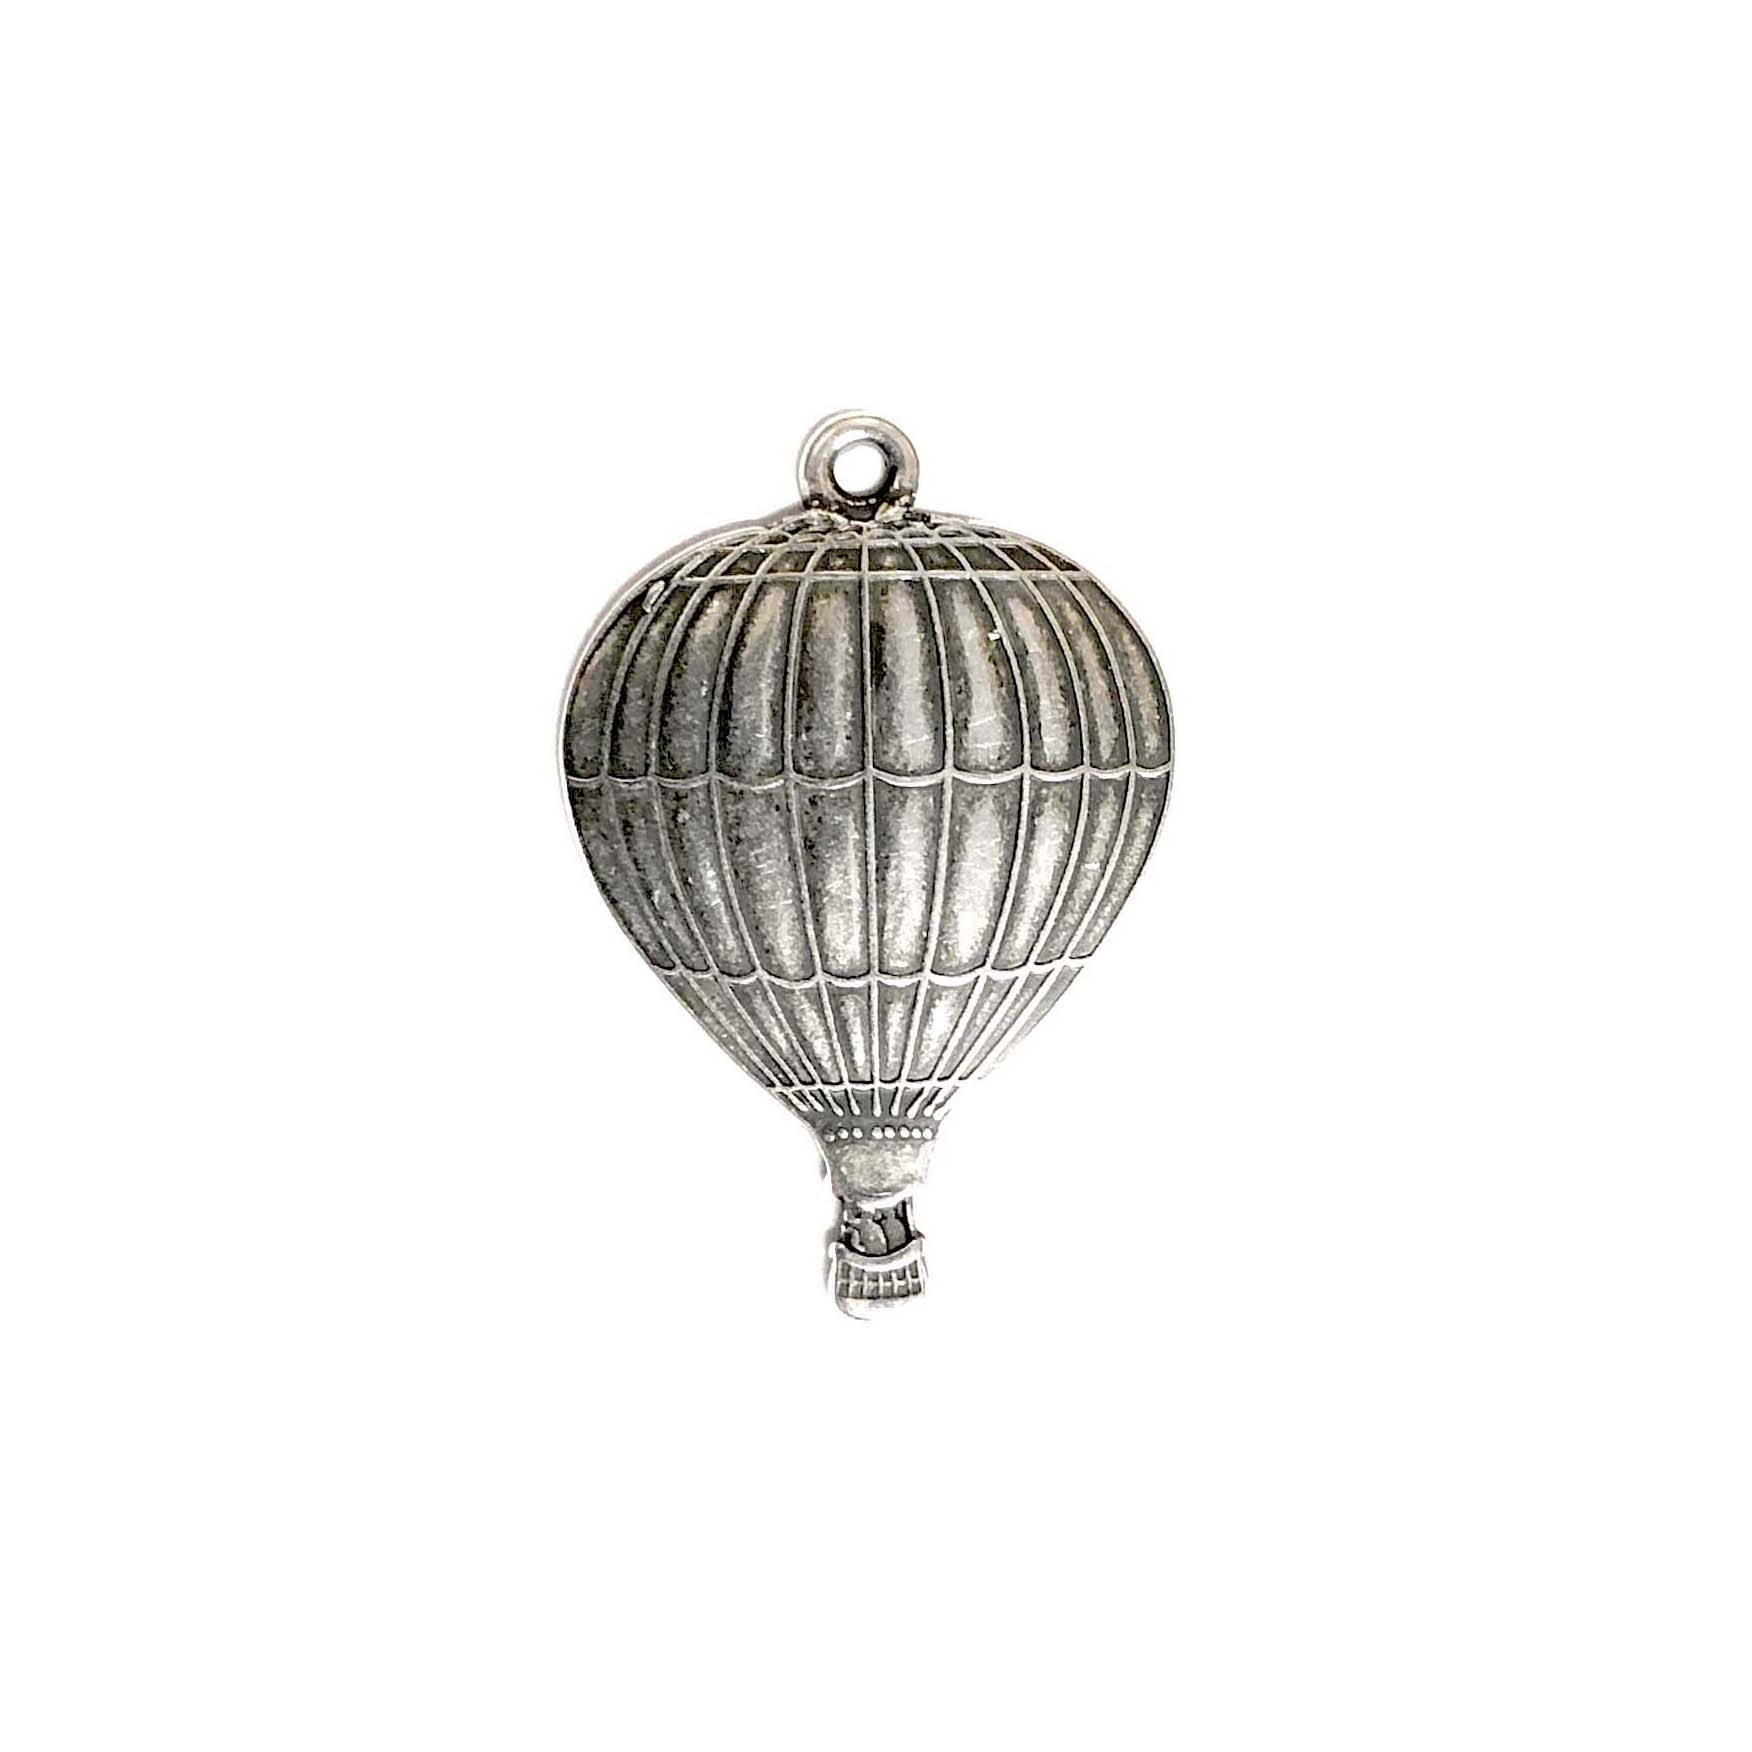 Hot Air Balloon Charms, Silverware, Steampunk, brass charms,brass stamping, silver plate, nickel free, USA Made, brass dirigible, antique silver, black antiquing, brass jewelry parts, vintage jewelry supplies, jewelry making supplies, 01382